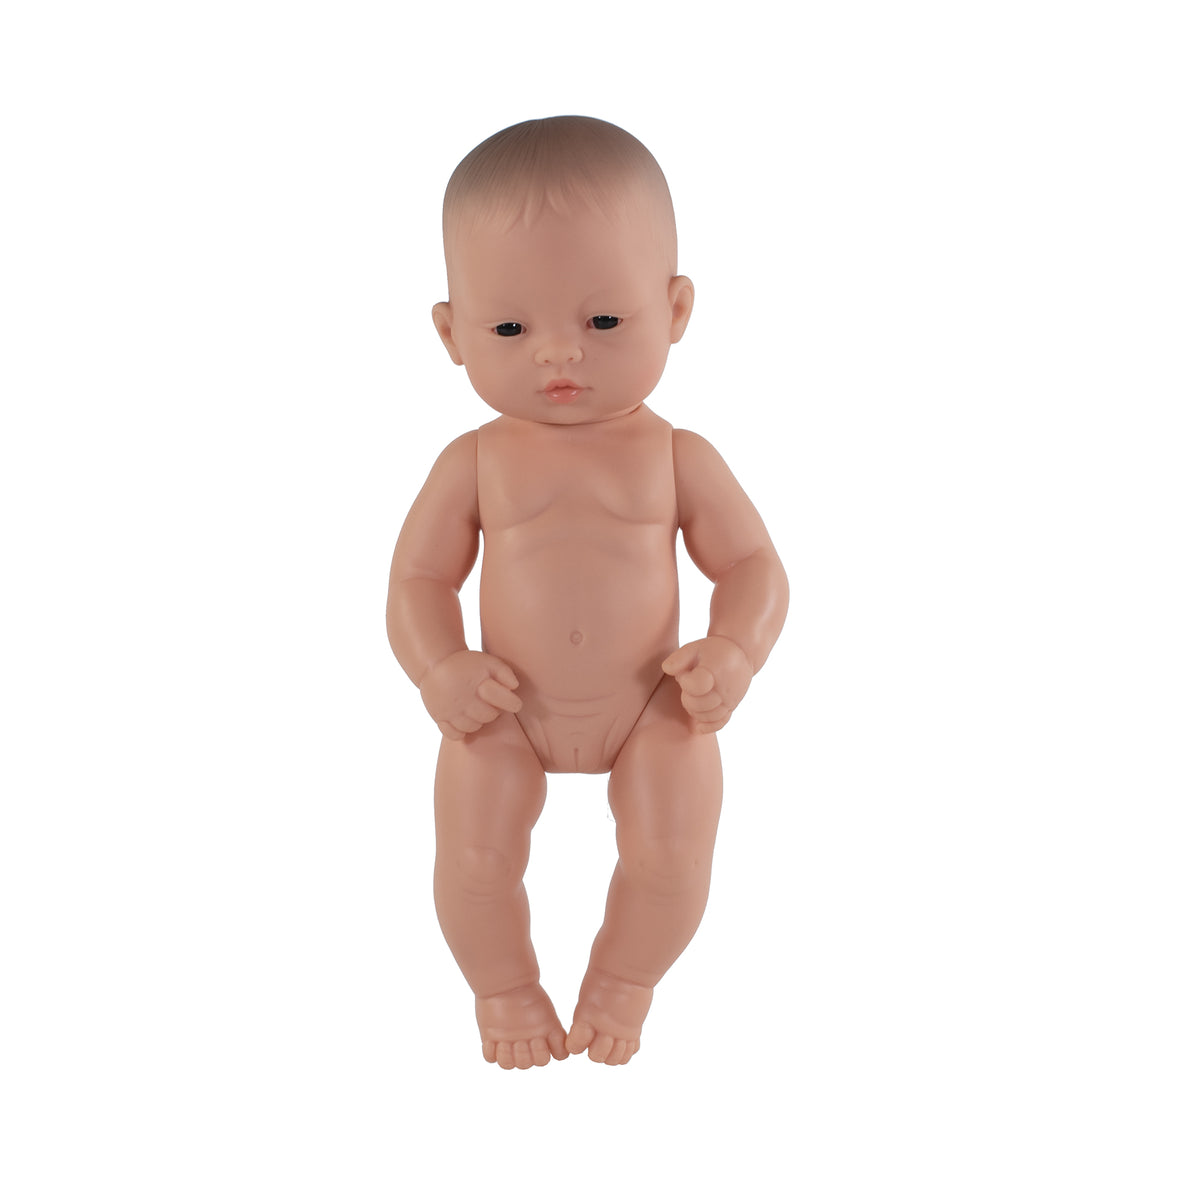 Anatomically Correct Doll | 32cm - Asian Girl